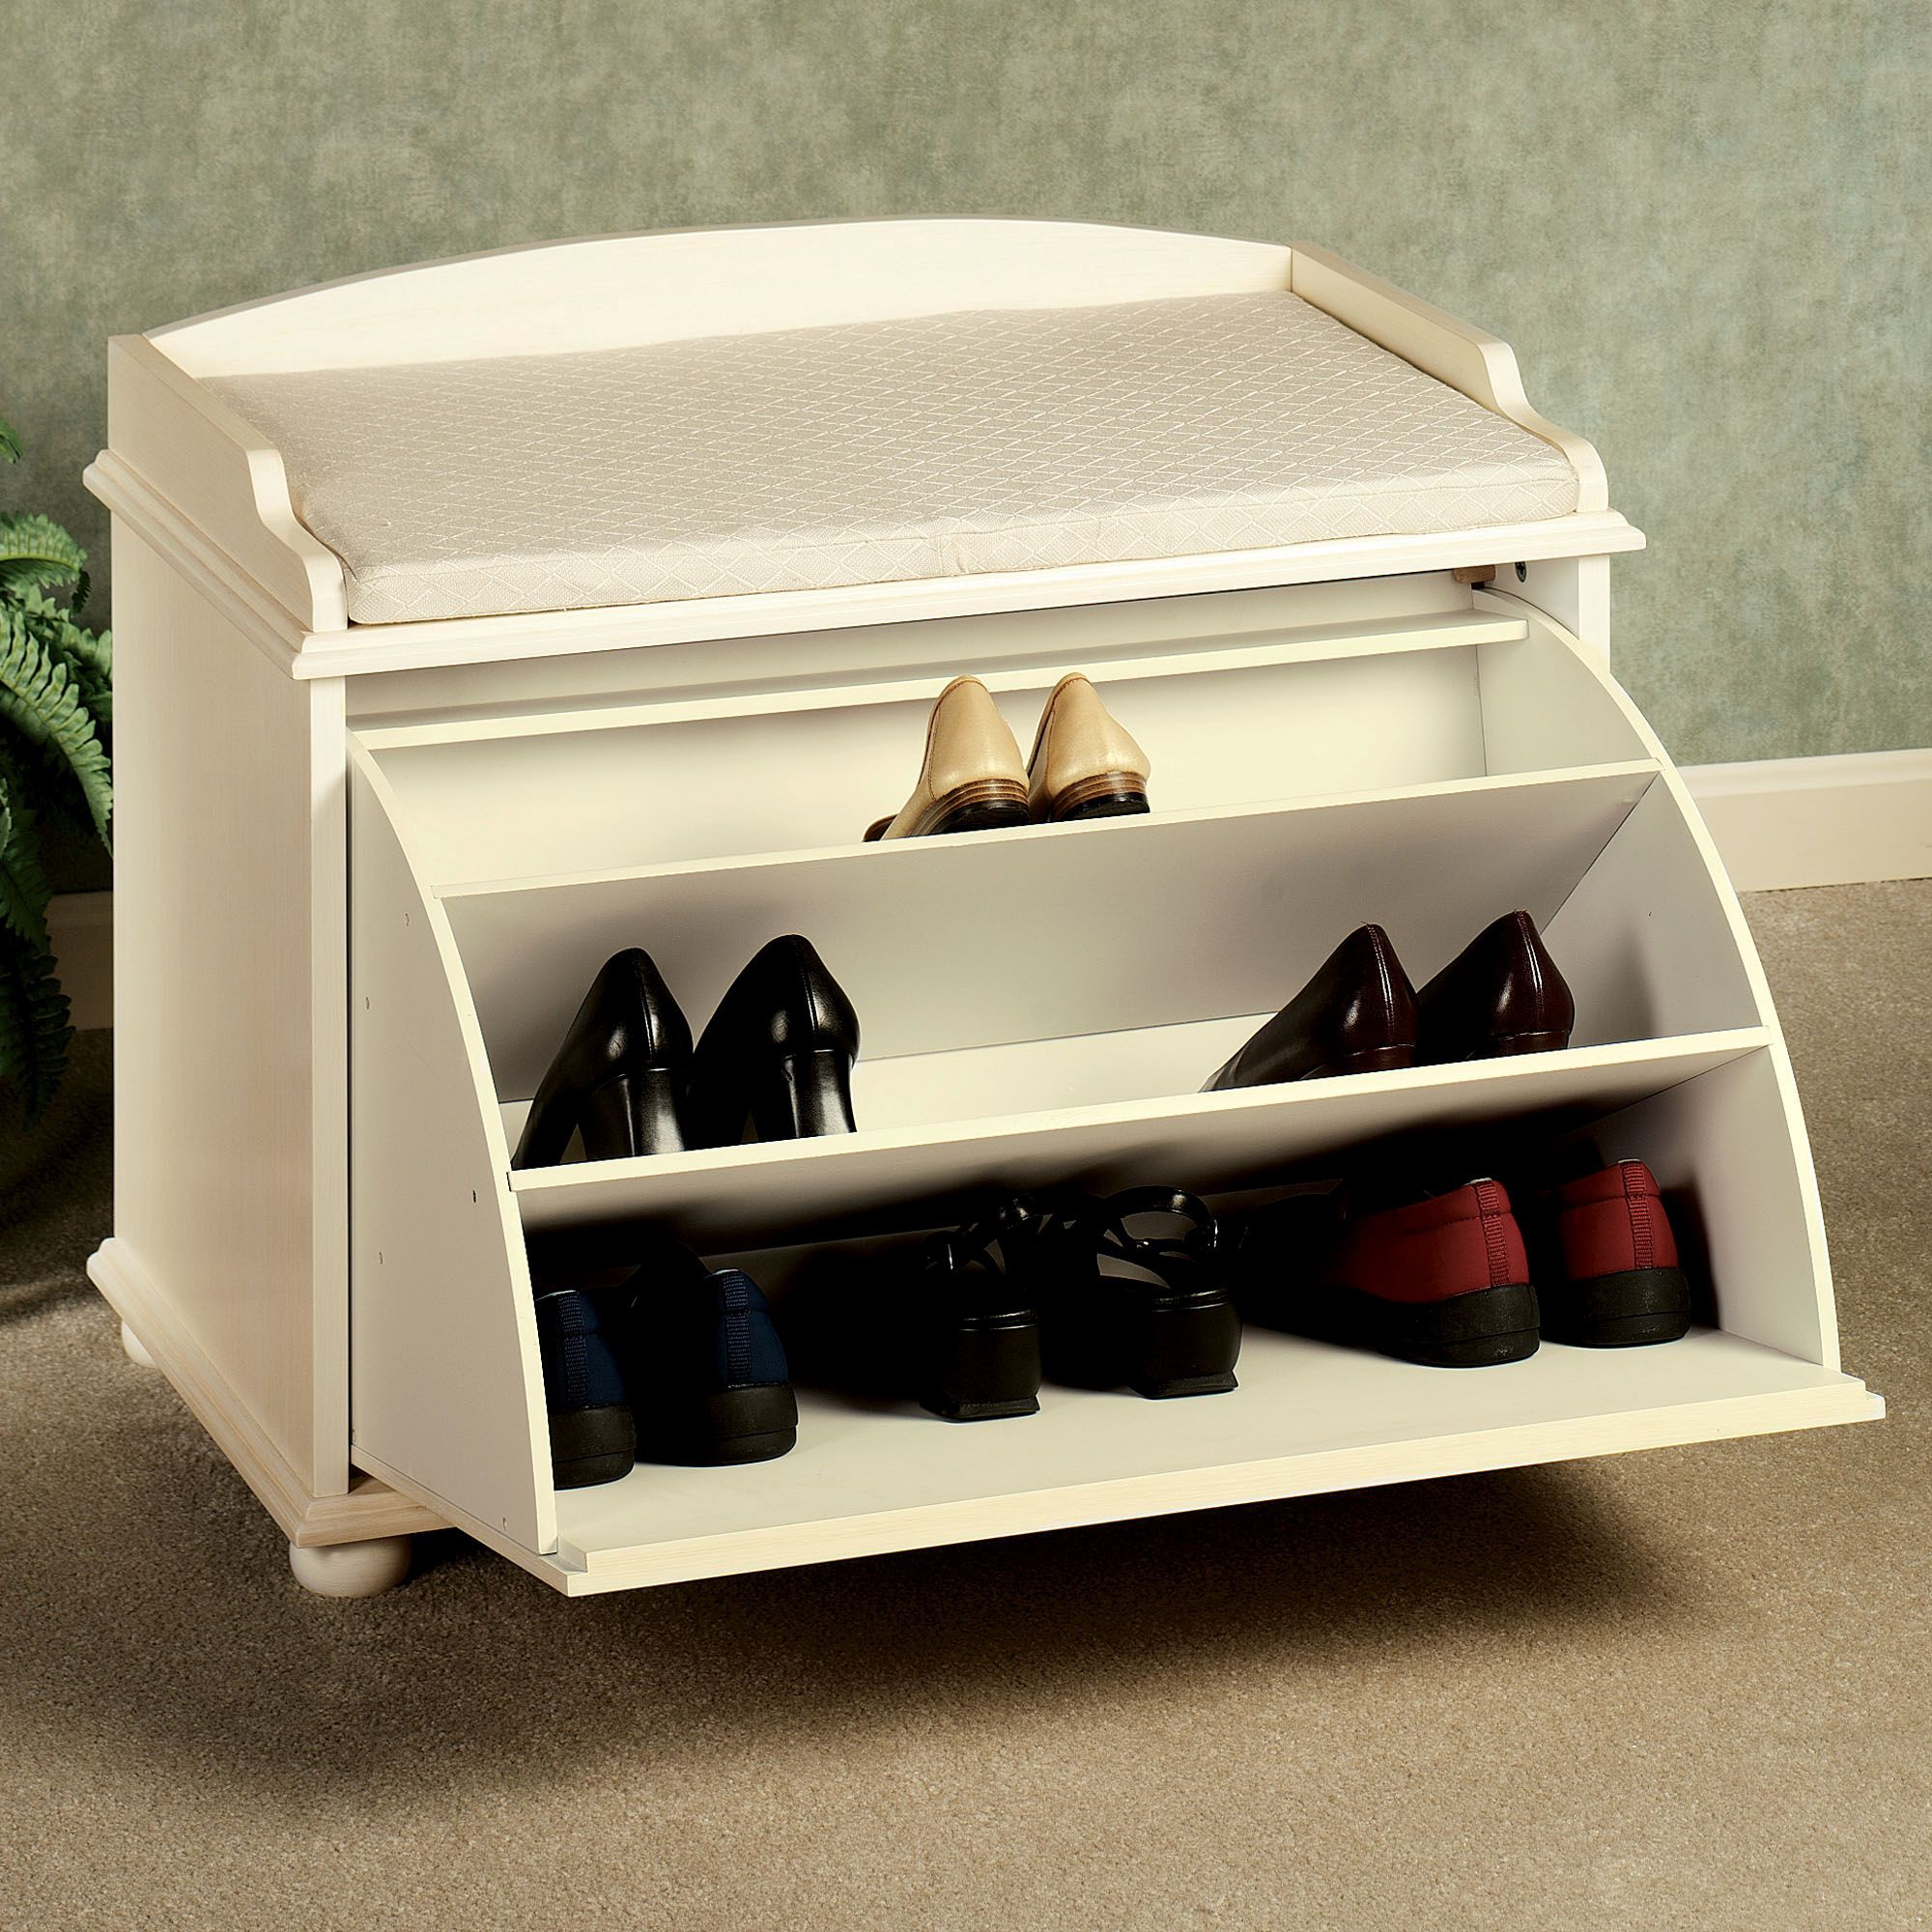 Small Shoe Storage Bench Ideas To Fill Their Room And Allow It To Be By Baby Allen Medium